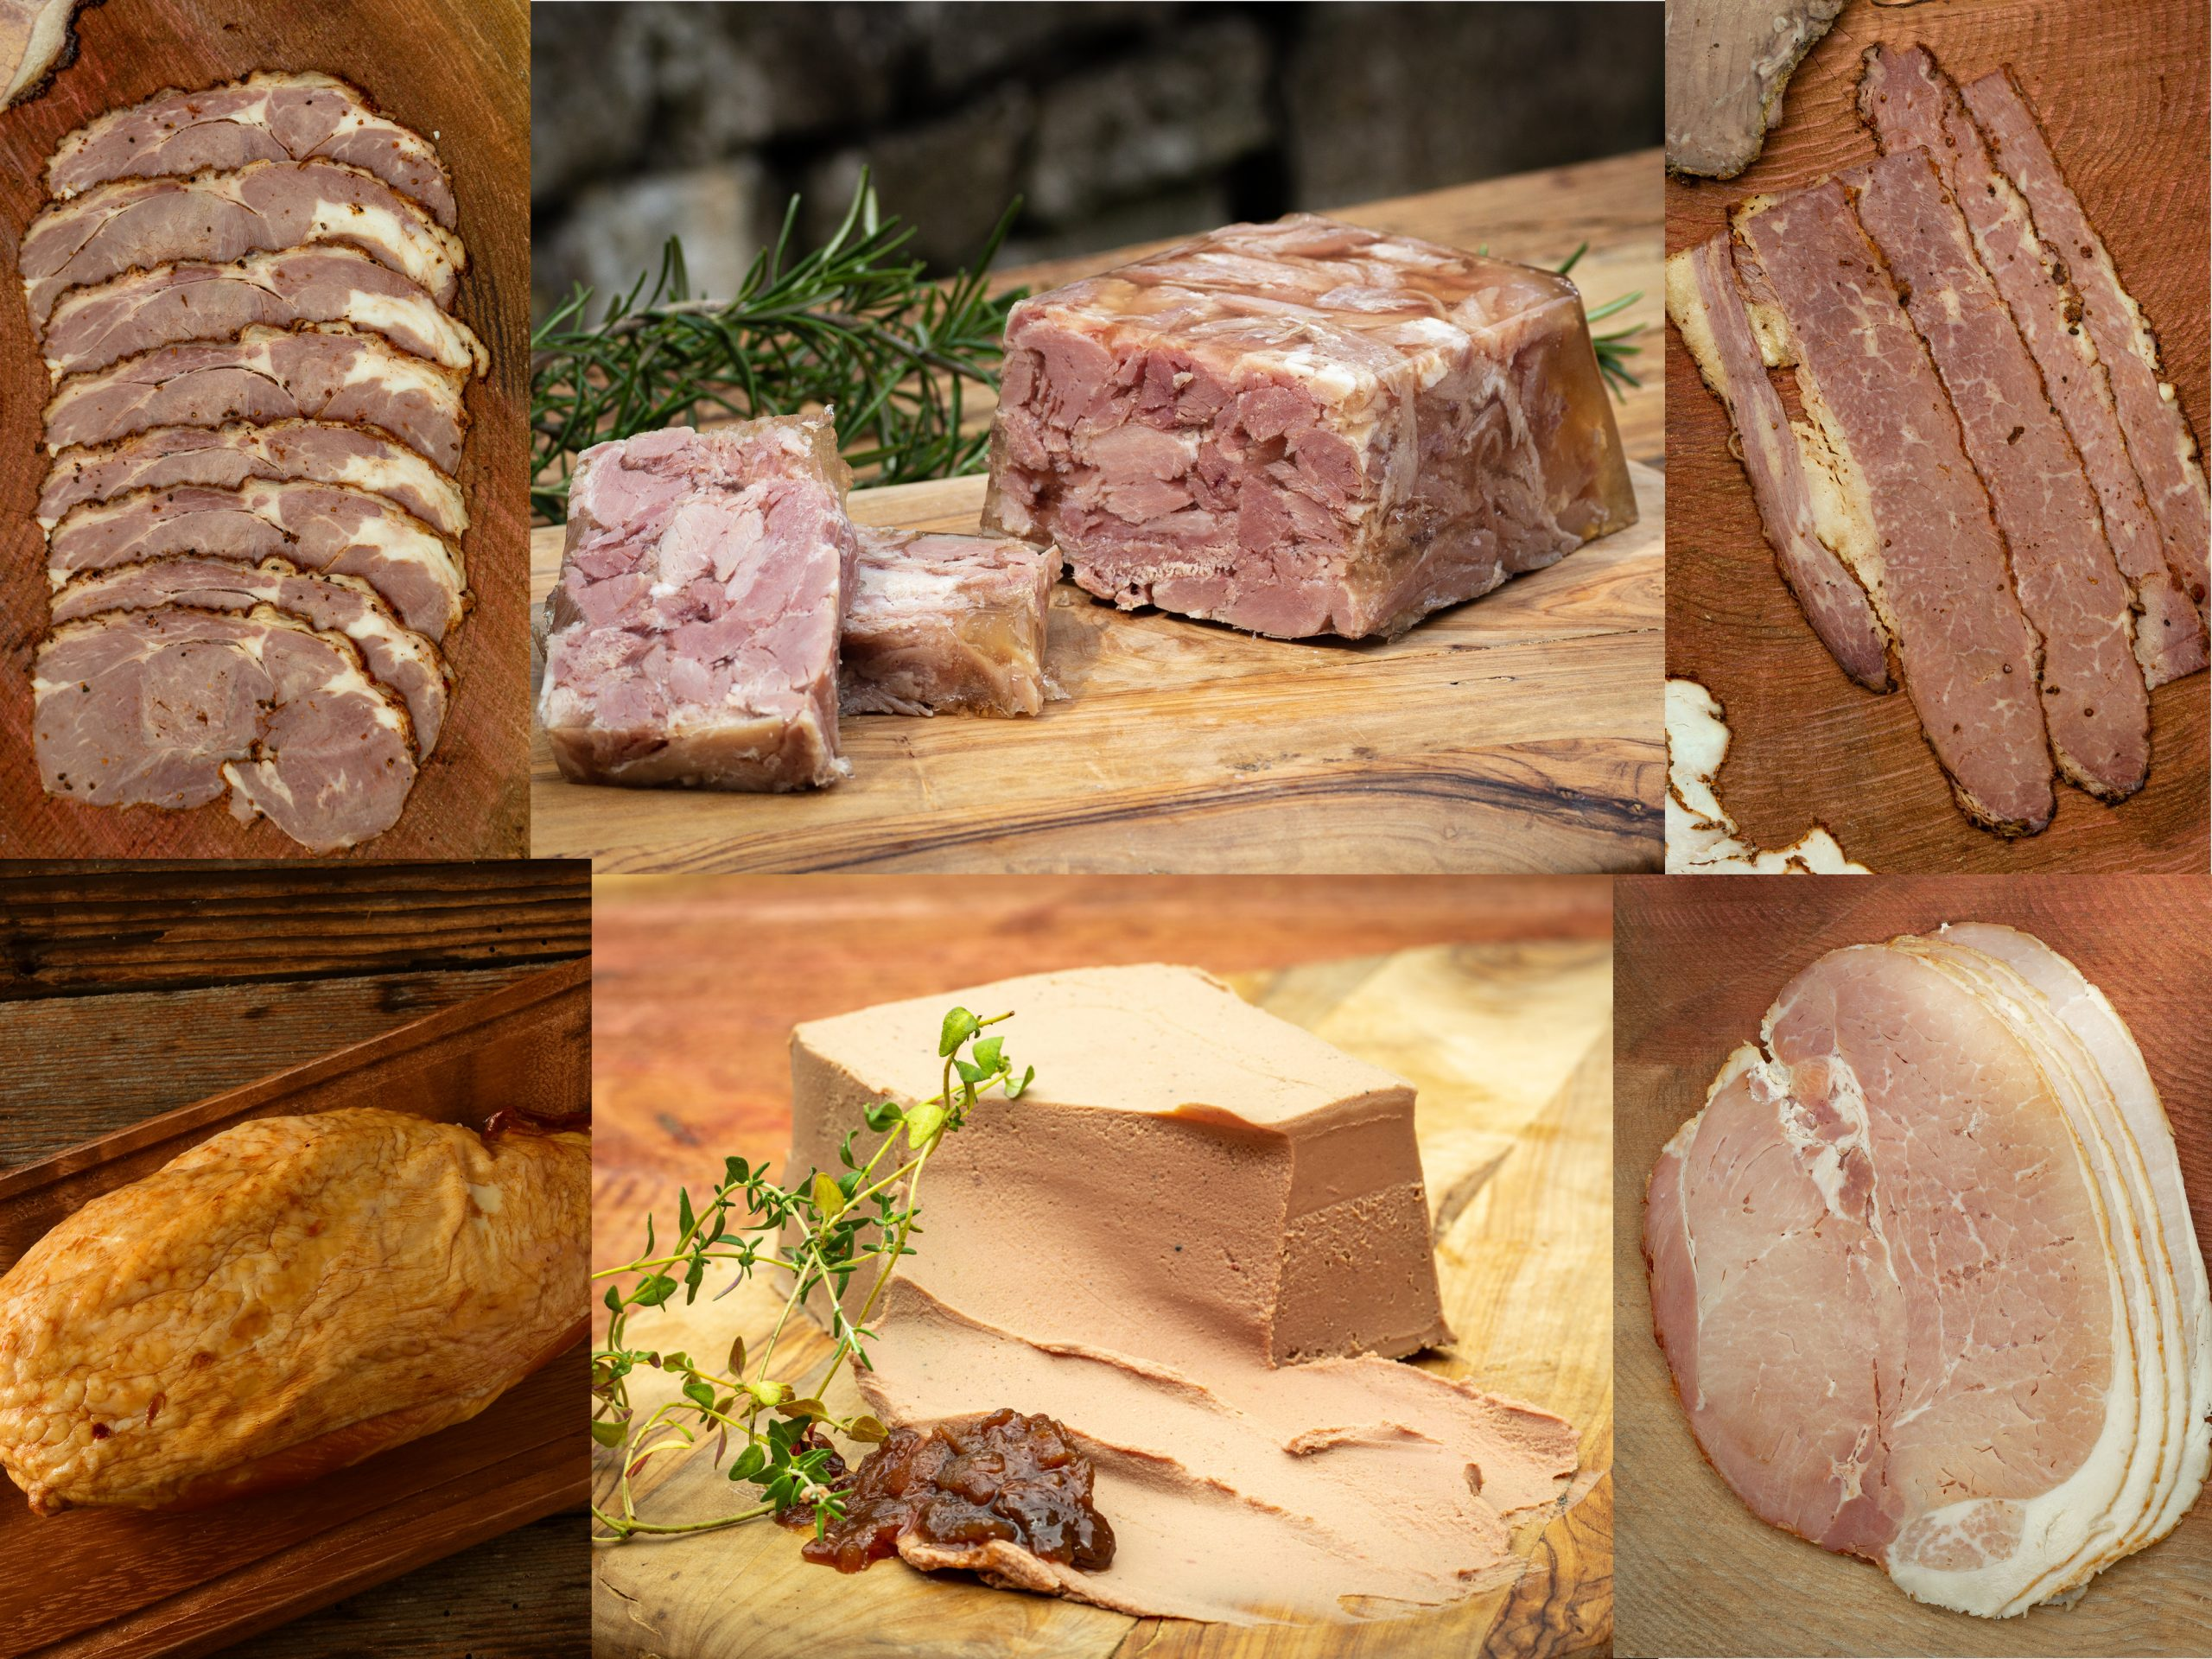 Cumbrian Charcuterie Selection